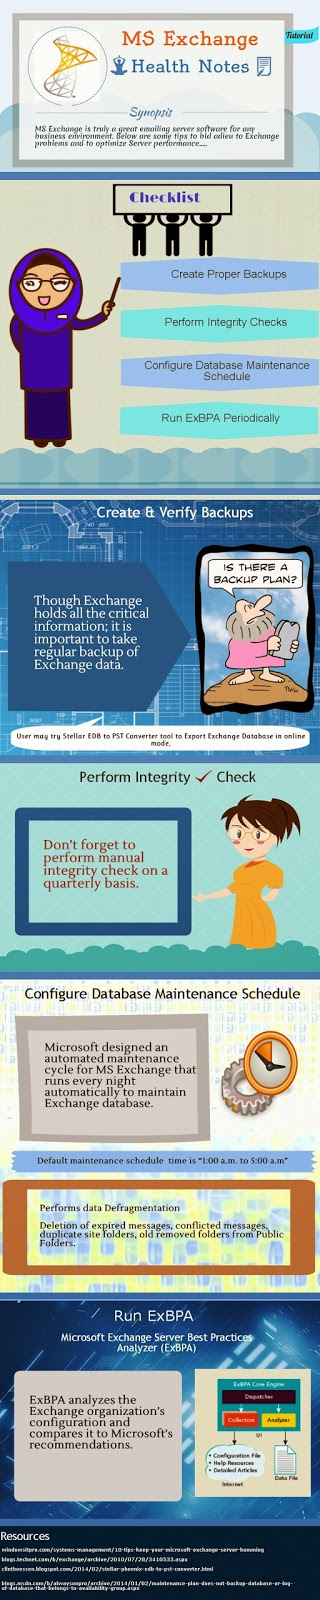 http://visual.ly/ms-exchange-health-notes-infographic